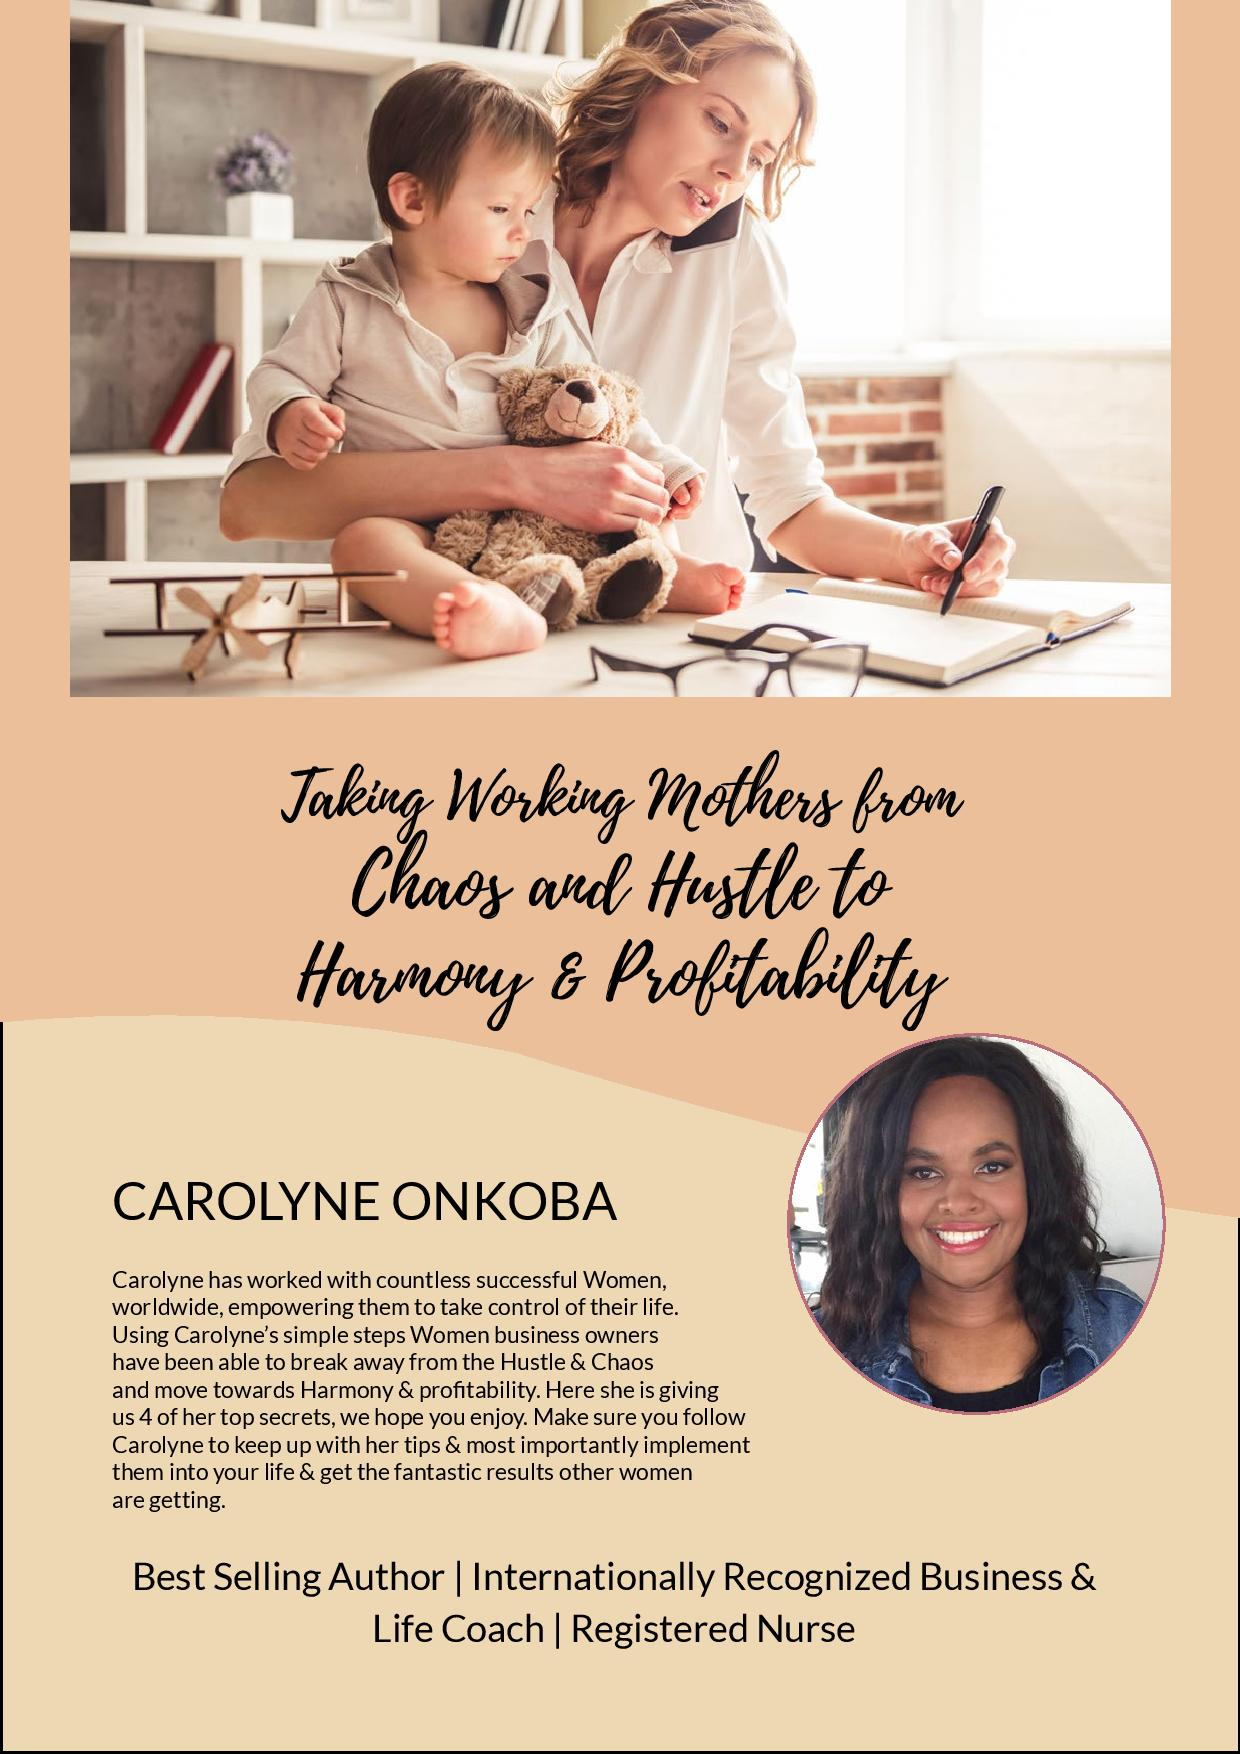 Caolyne Onkoba's Top 4 Secrets to mange home and business success